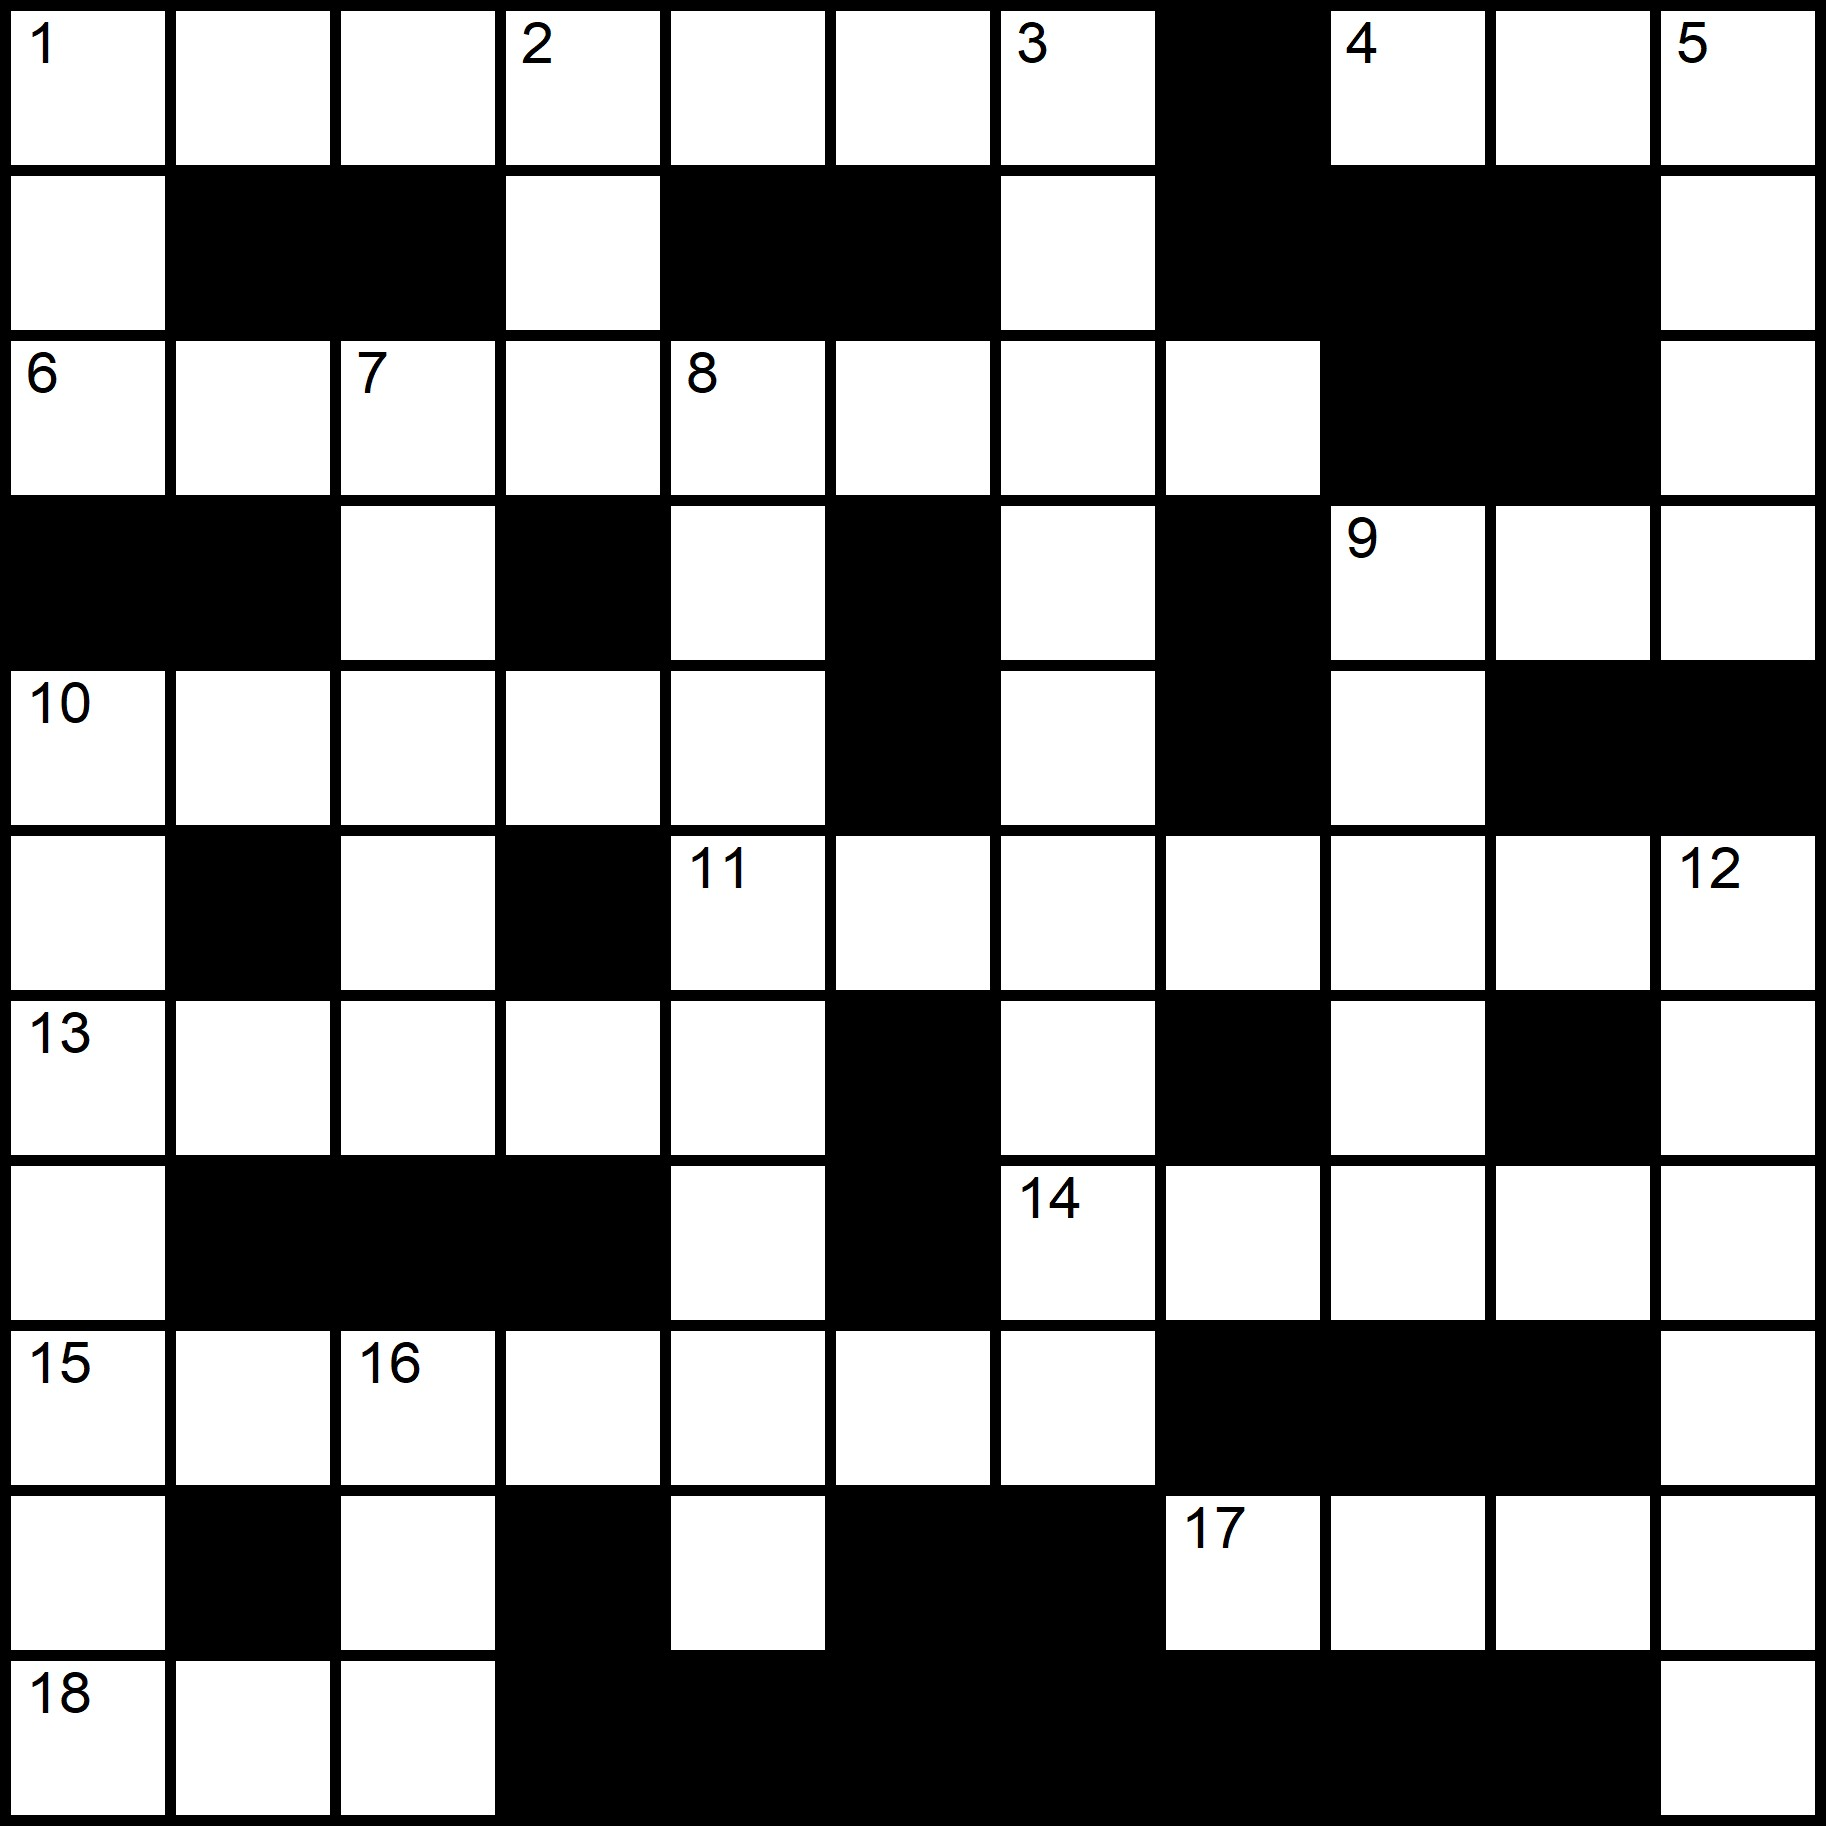 Crossword Puzzles Printable - Placidus Flora - Crossword number eight